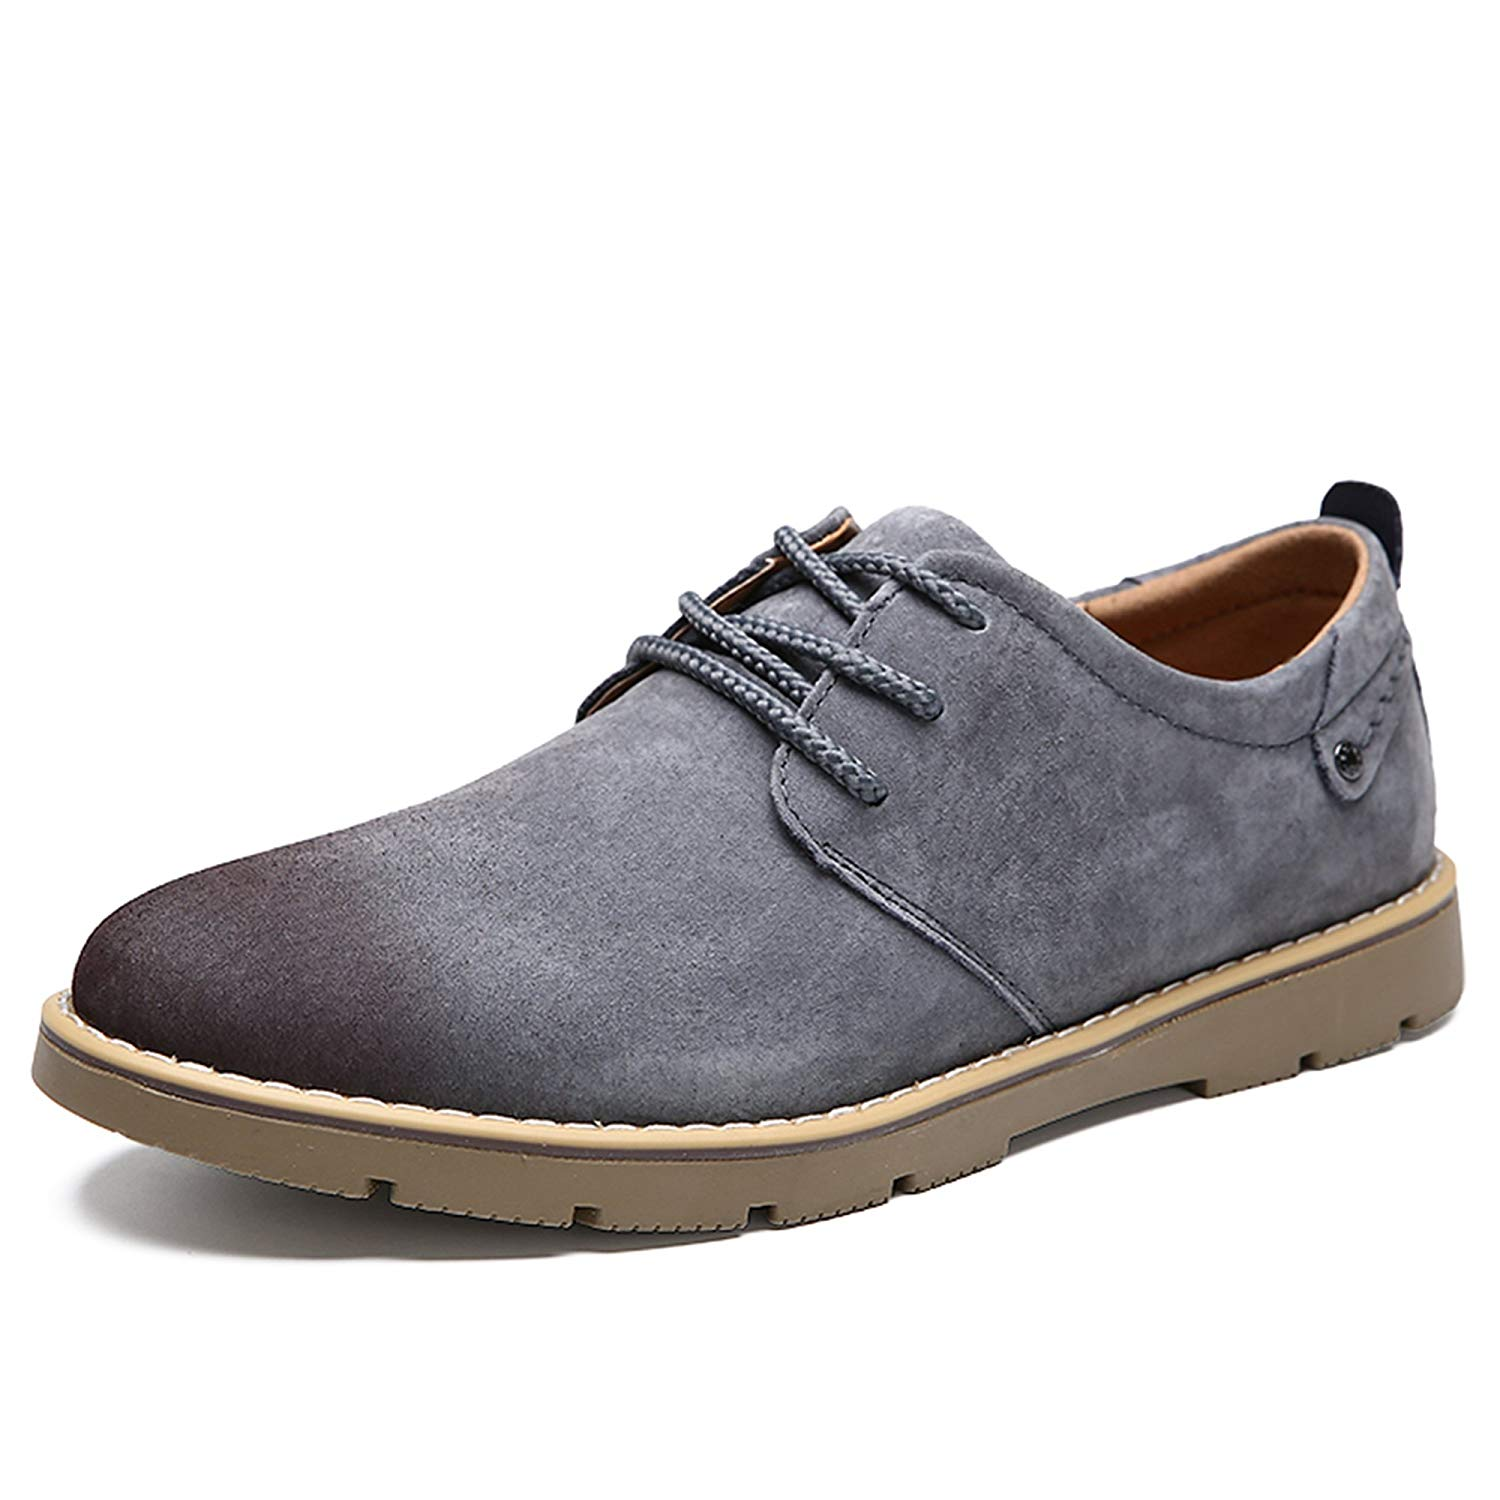 Genuine Cow Leather Sneakers Lace-up Fashion Oxfords Shoes For Men